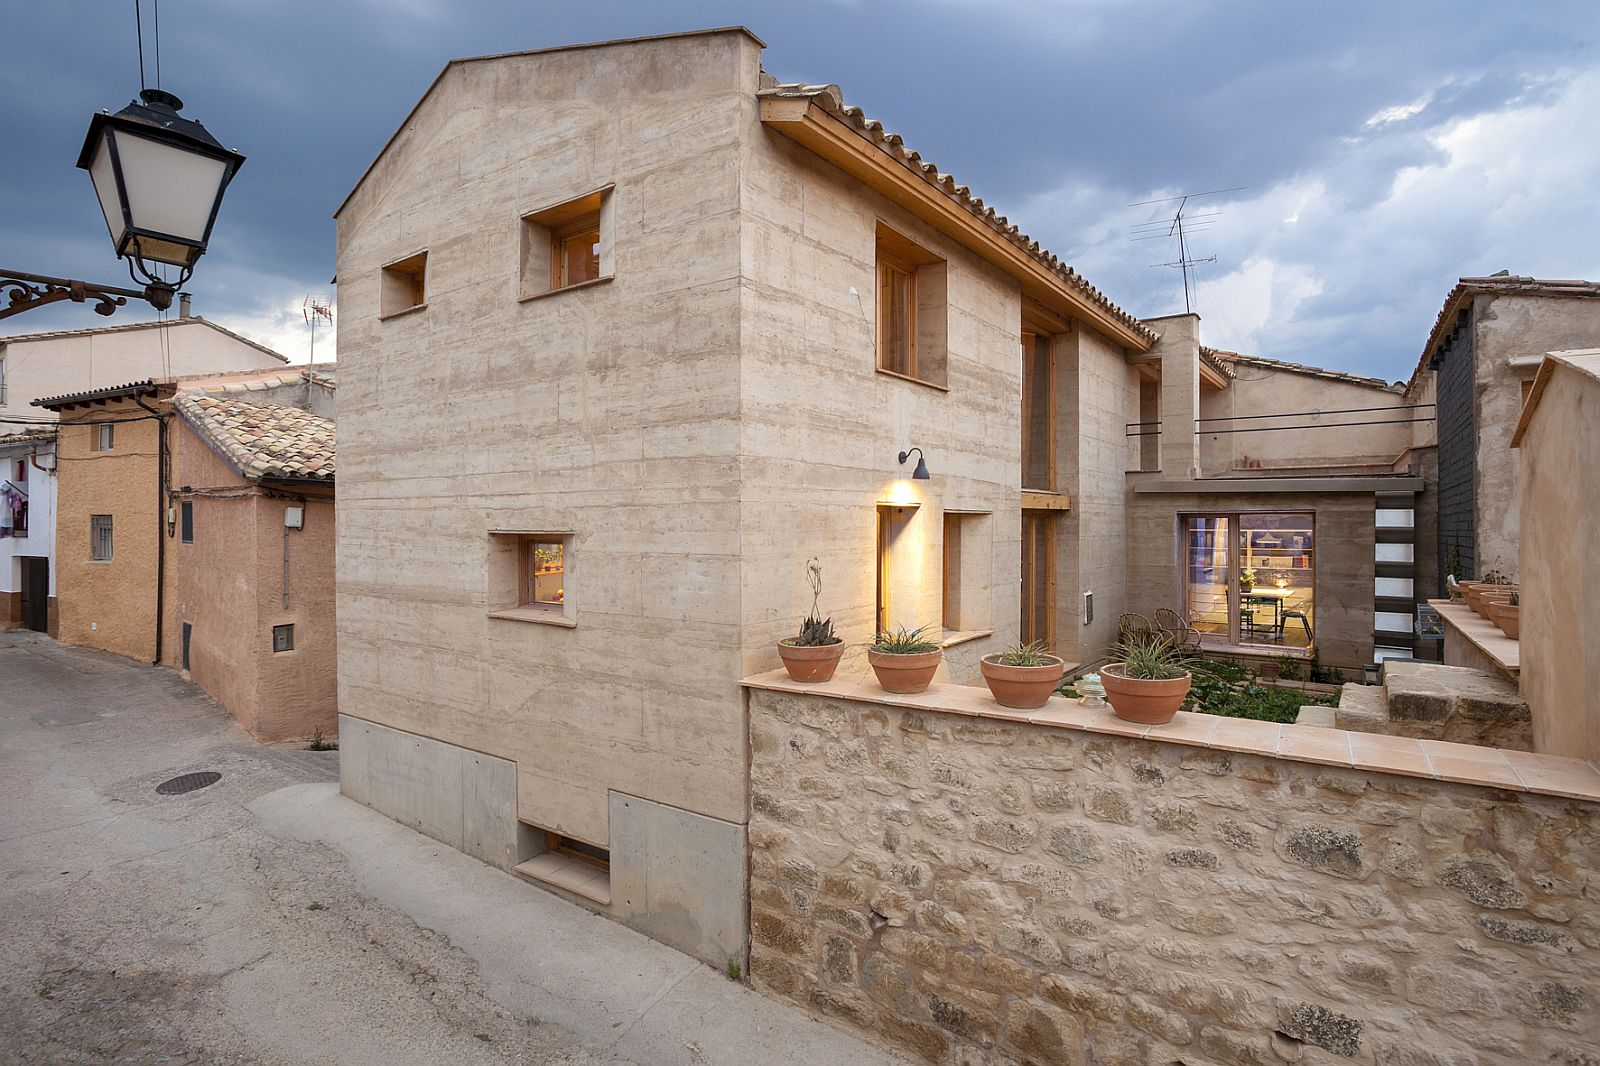 Contemporary earthen home with award winning design by Edra Arquitectura Architectural Revival: Sustainable Rammed Earth House in Spain